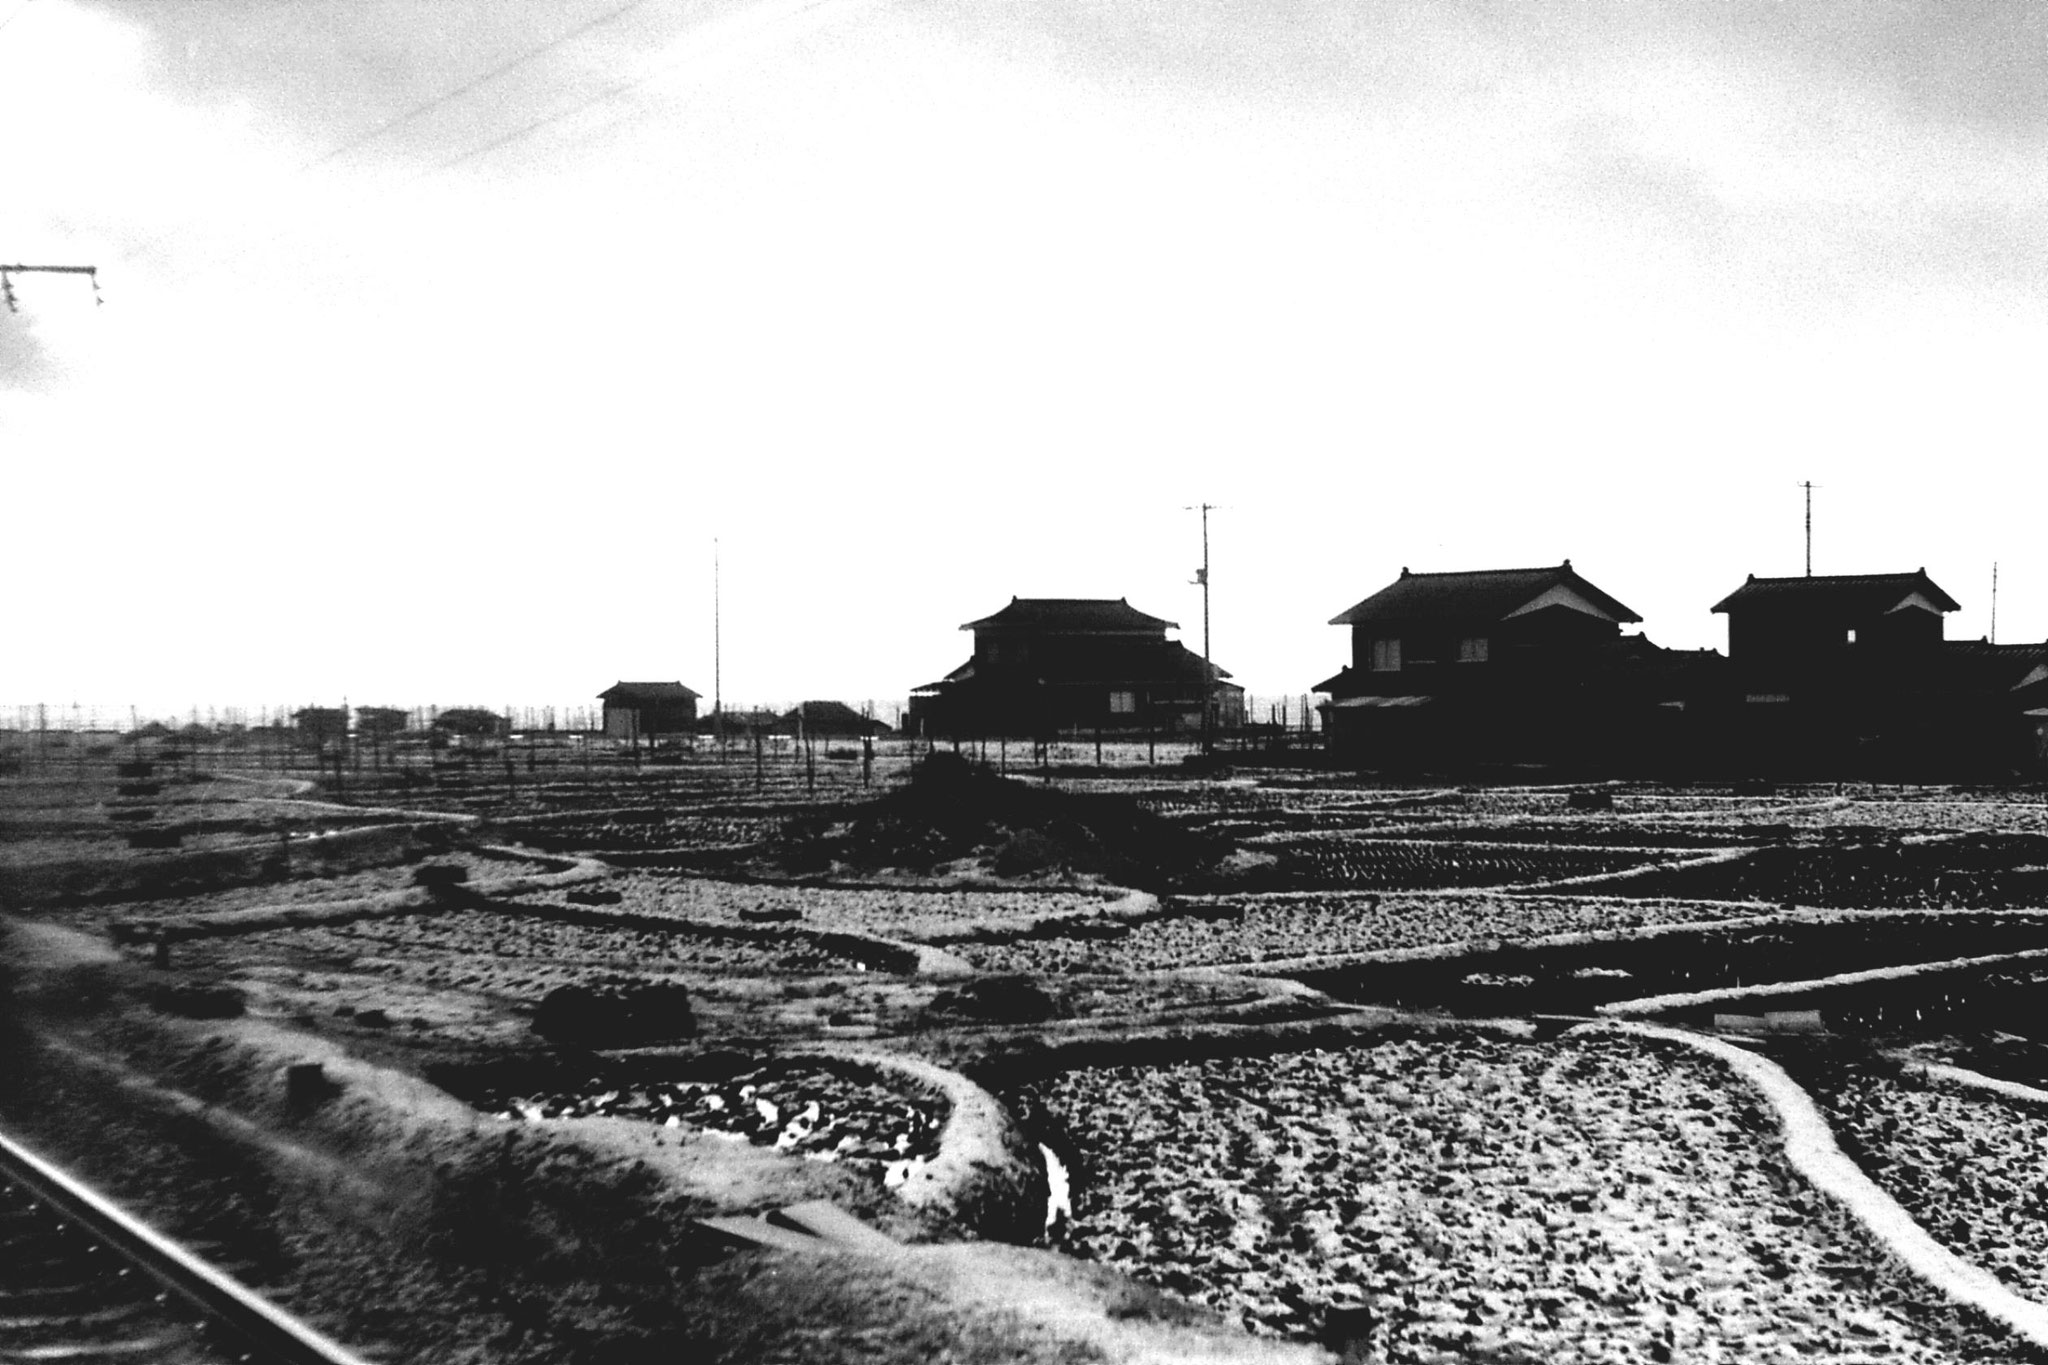 16/1/1989: 3: sea and rice fields